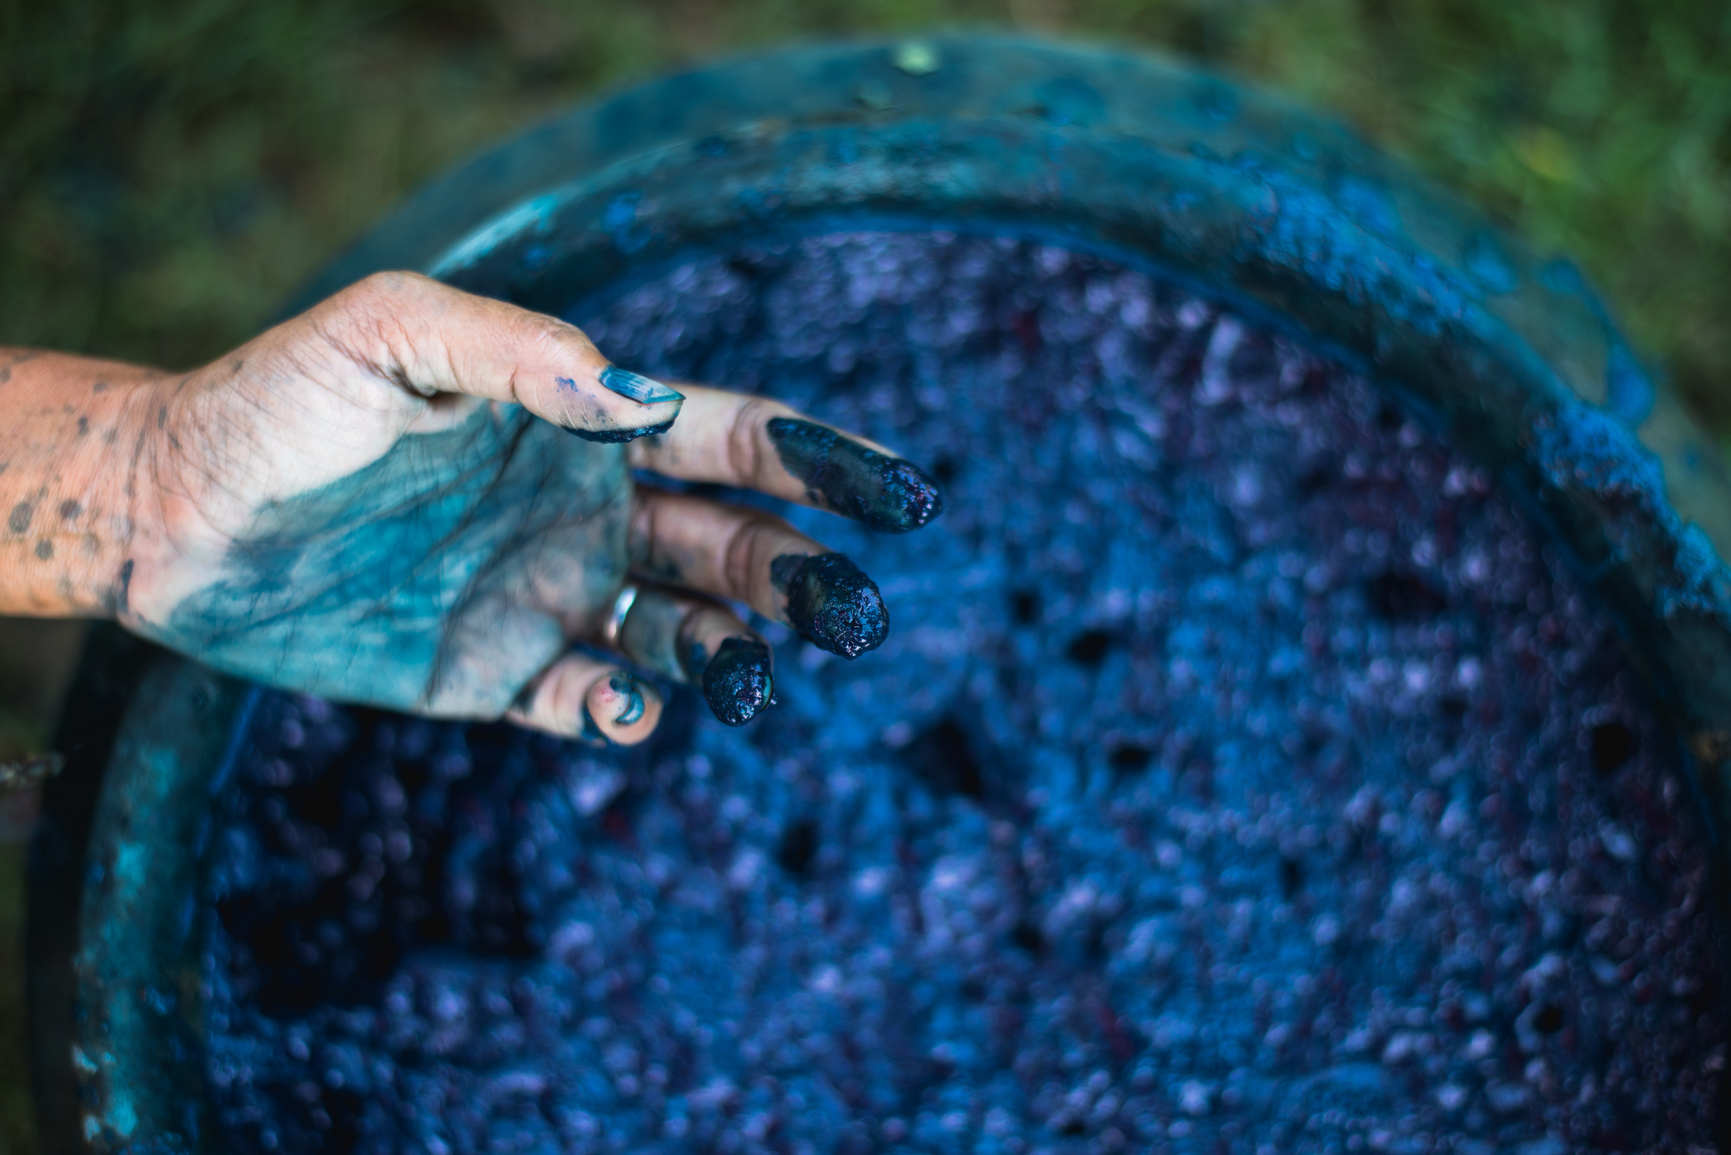 indigo dye stained hands over container of dye